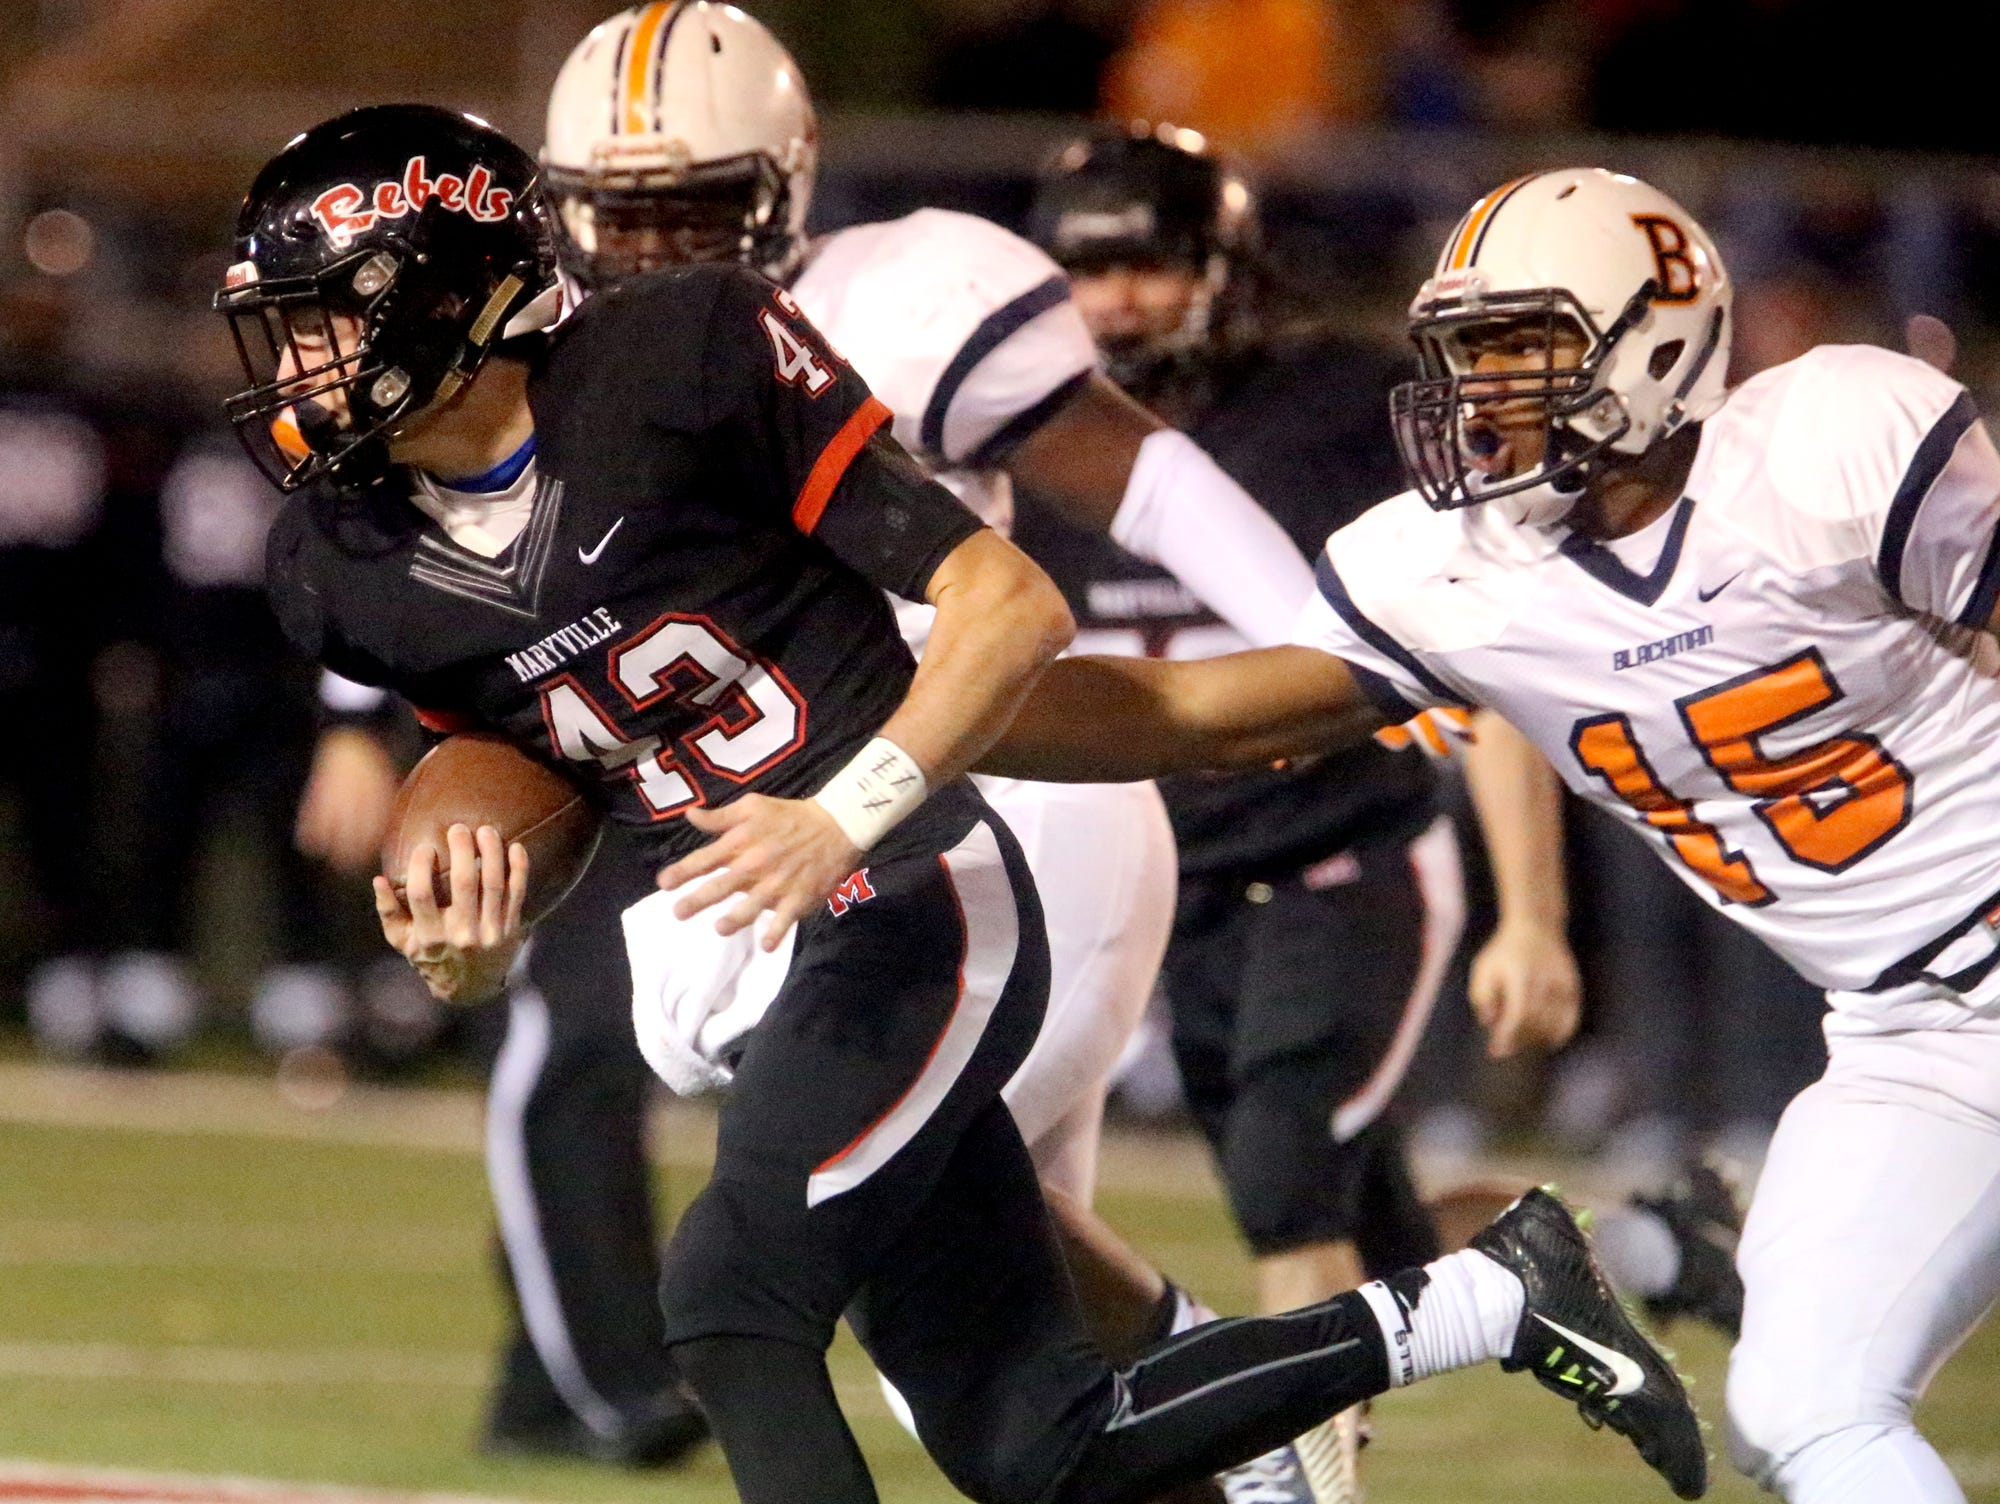 Maryville's Joel Hopkins (43) runs the ball as Blackman's Donnel Bailey (15) tries to stop Hopkins during the quarterfinal game, at Maryville, on Friday, Nov. 20, 2015.